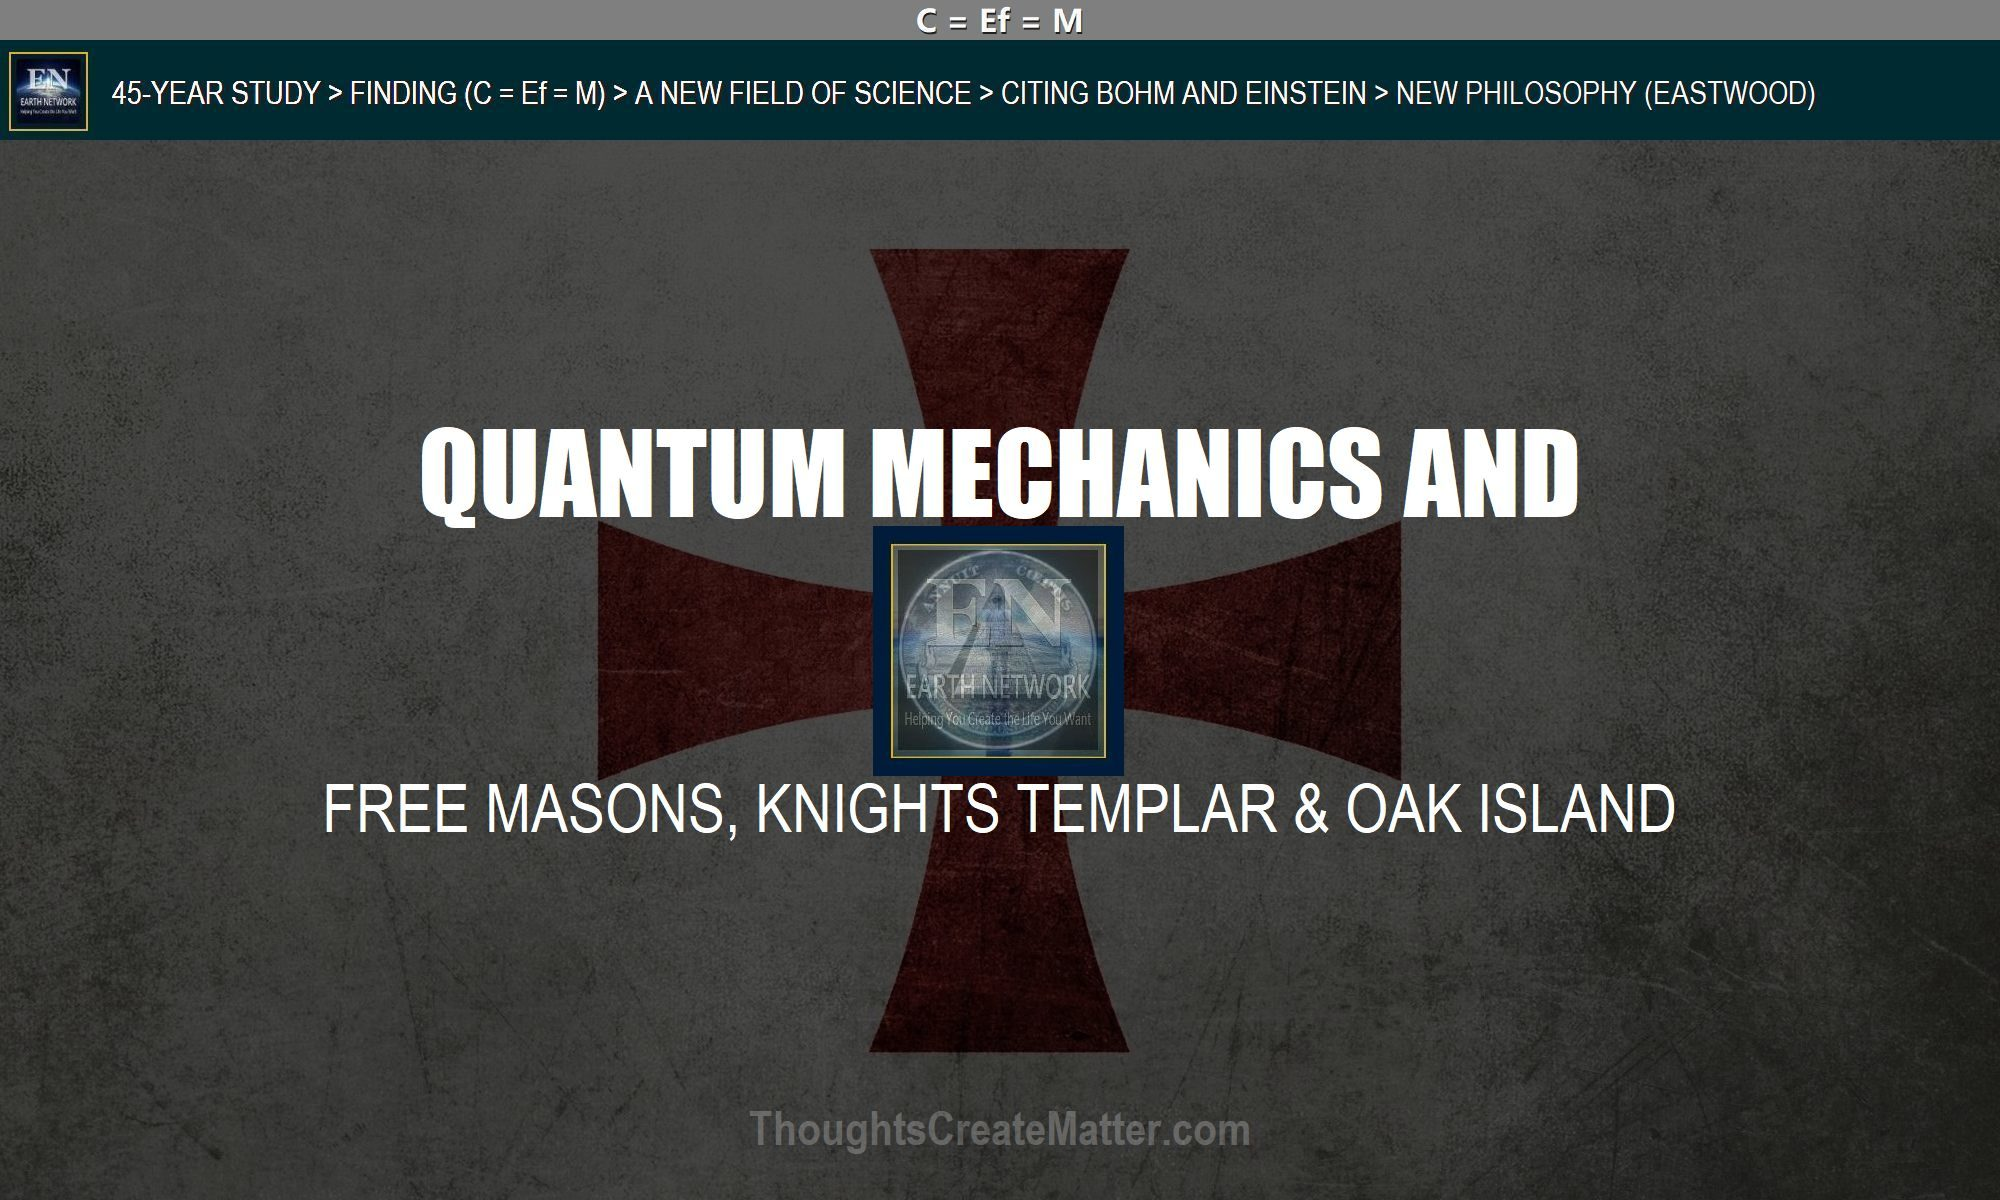 Knights Templar flag and Great Seal depict what-is-on-oak-island-mystery-answer-how-are-knights-templar-free-masons-george-washington-connected